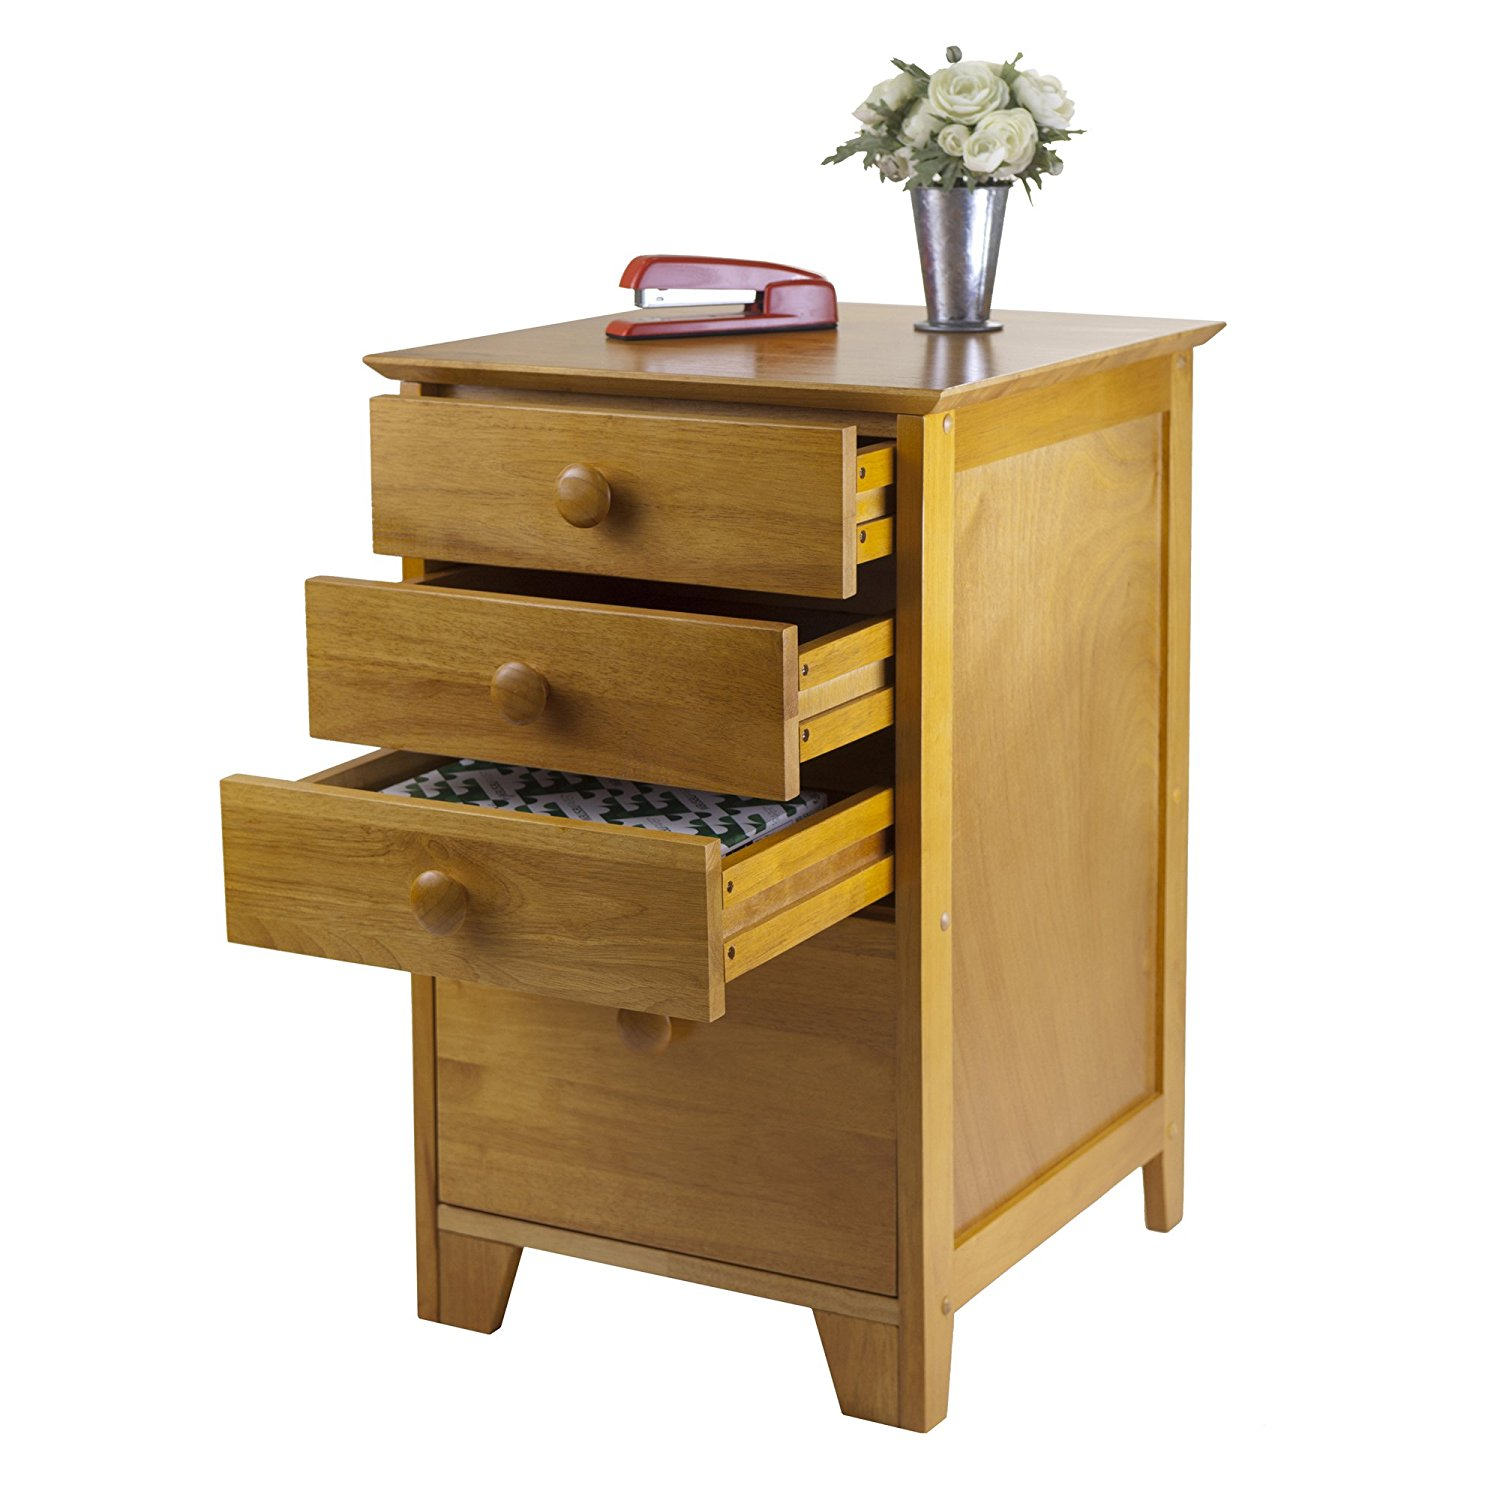 Solid Wood File Cabinet Best 4 Drawer Solid Wood Cabinet Furniture For File Organizing